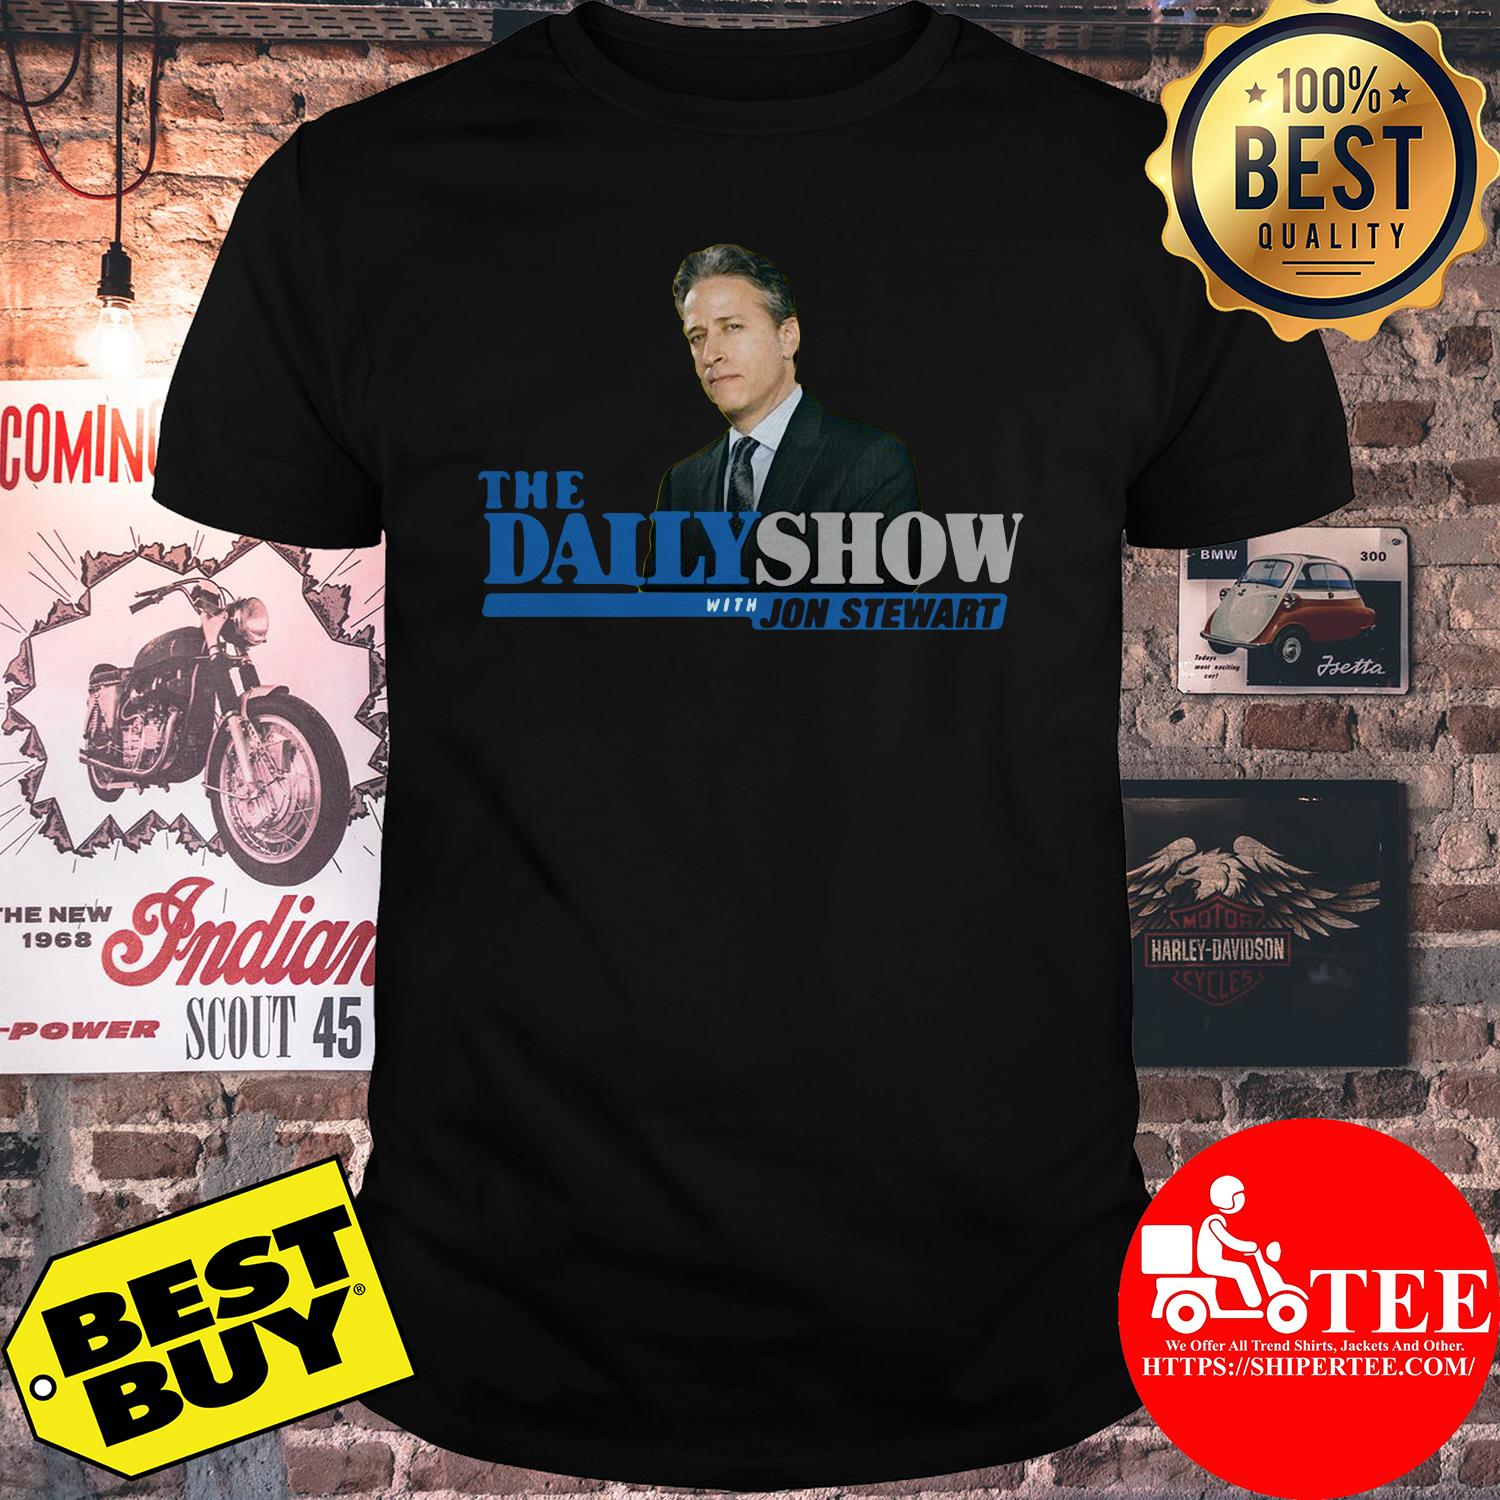 The Daily Show With Jon Stewart Shirt